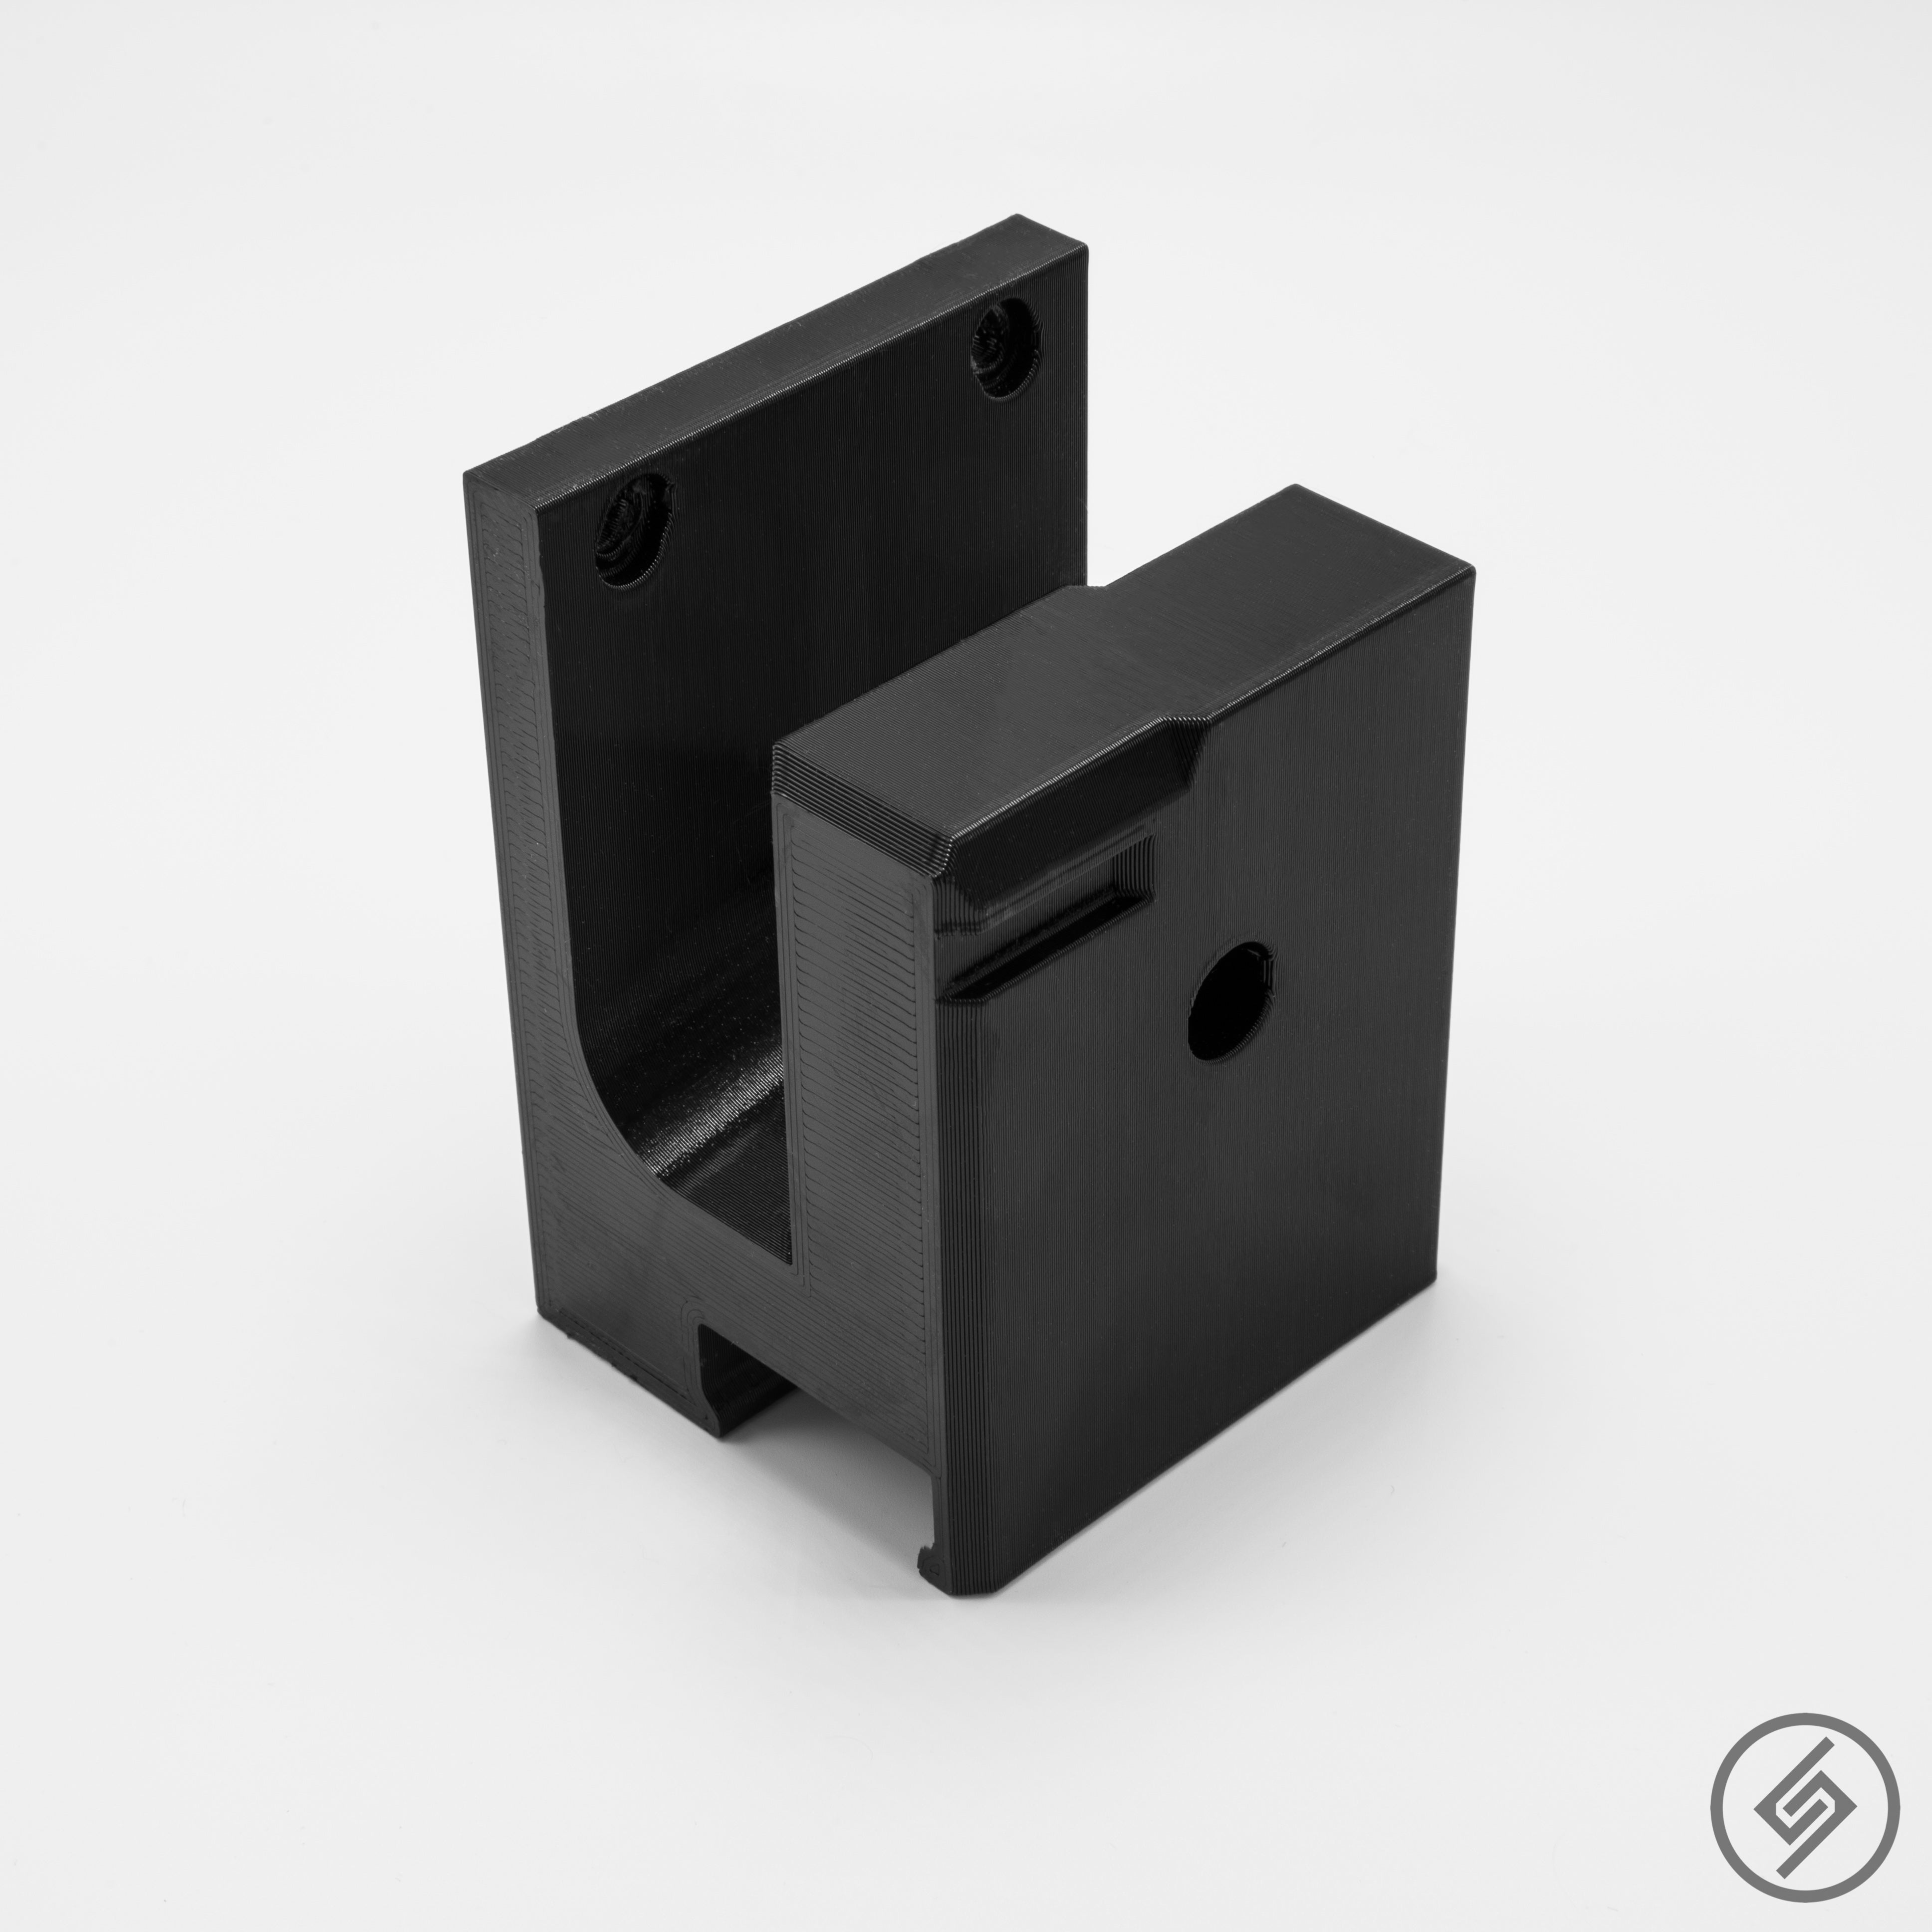 AR-10 + PMAG Wall Mount, Spartan Mounts, Product Photo 2